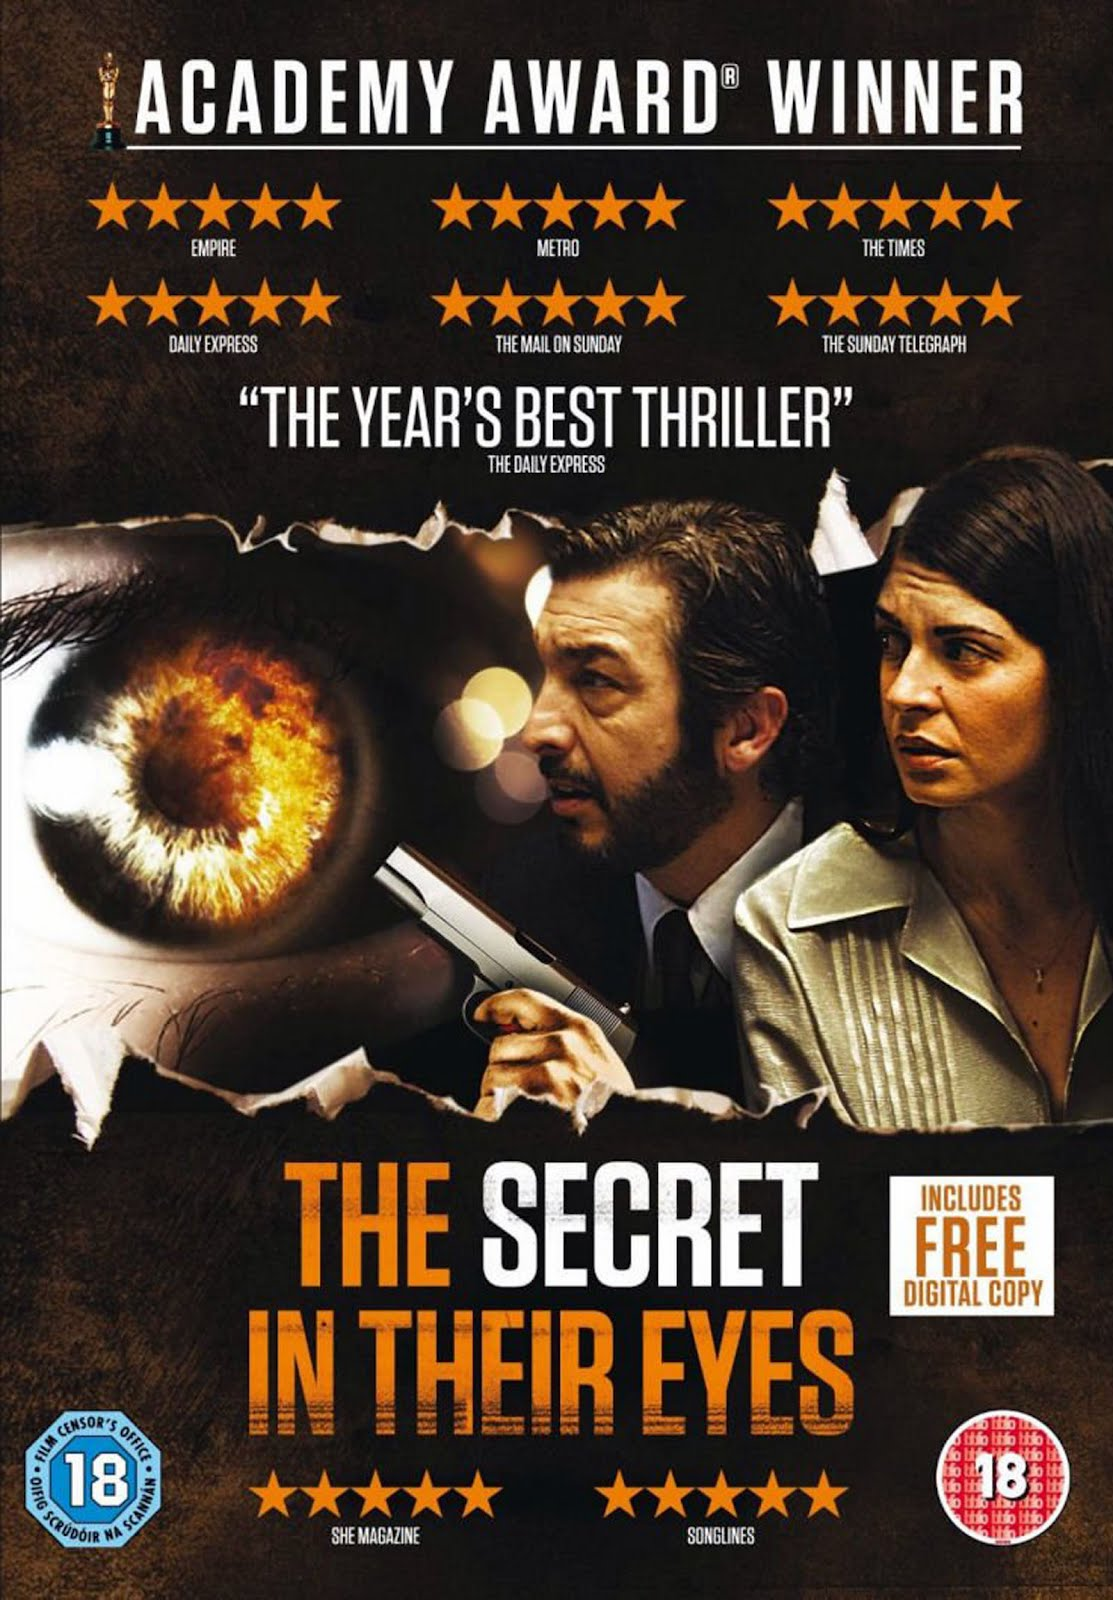 the-secret-in-their-eyes-movie-poster